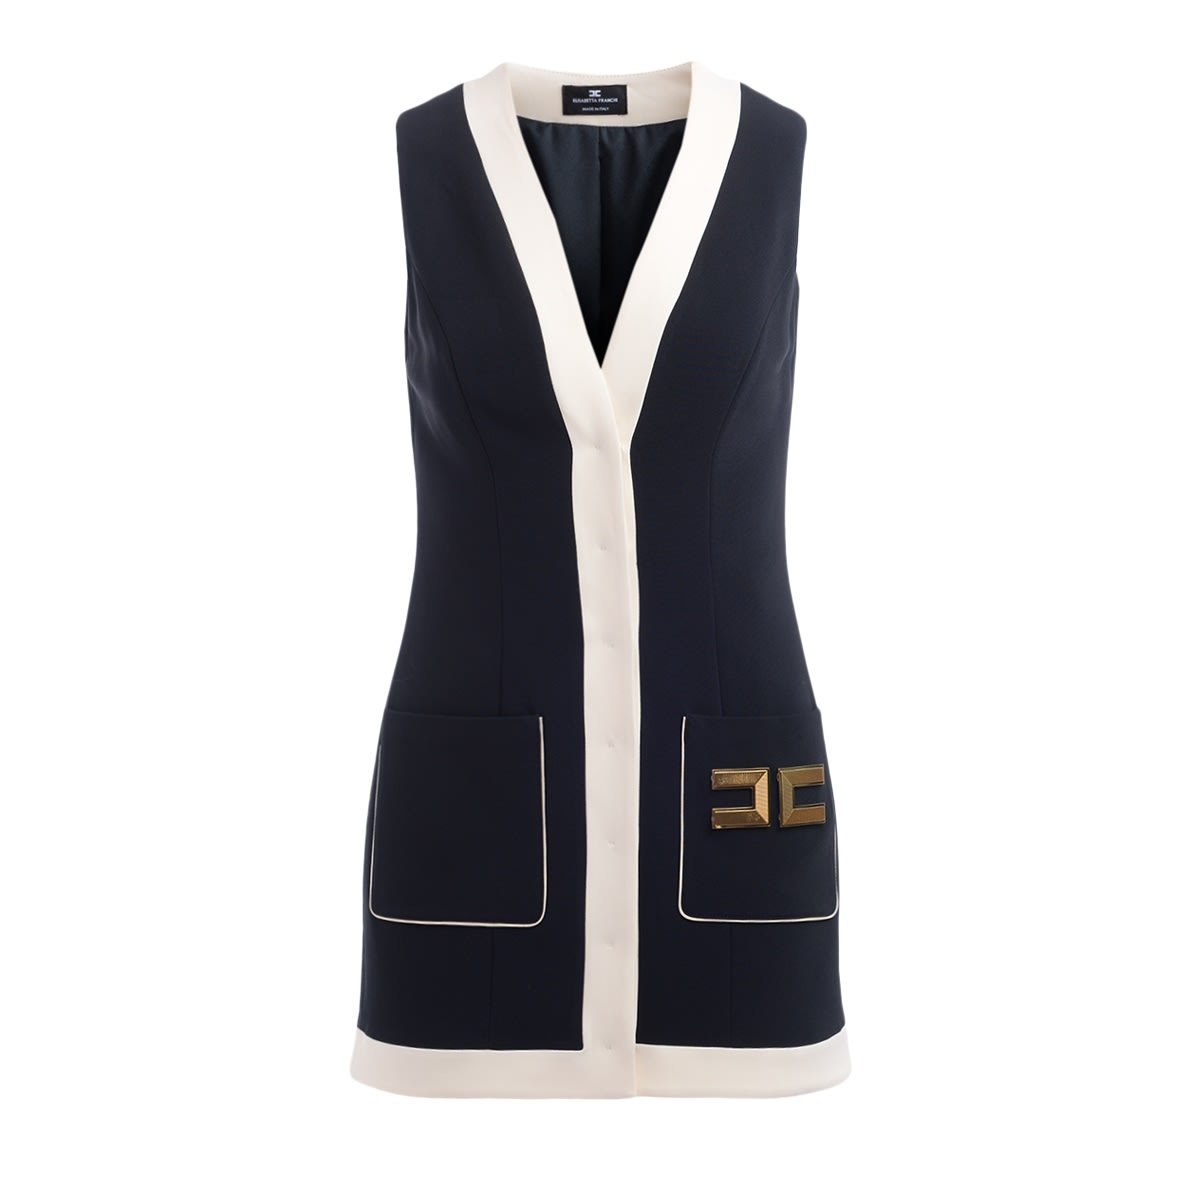 Buy Sleeveless Elisabetta Franchi Black Dress With Contrasting Bands online, shop Elisabetta Franchi Celyn B. with free shipping